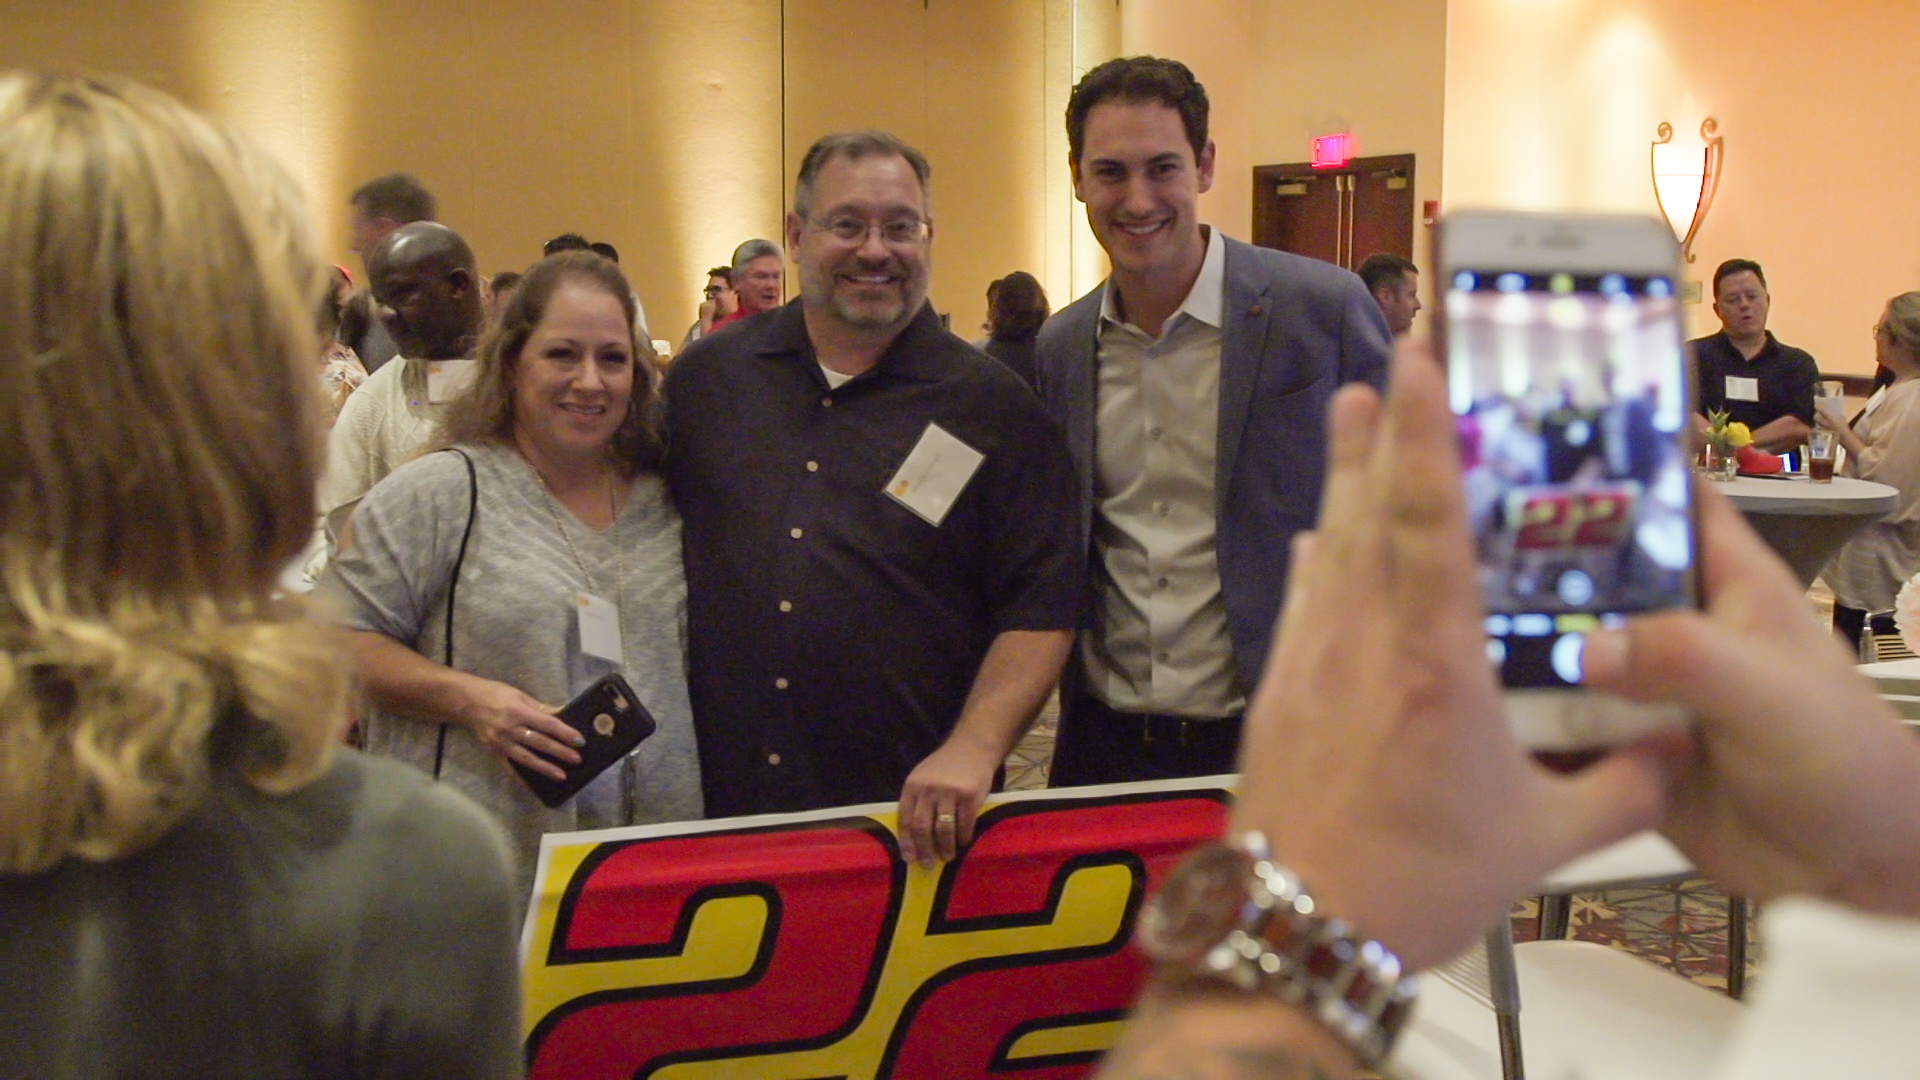 Joey Logano meets with customers at dinner Saturday night.